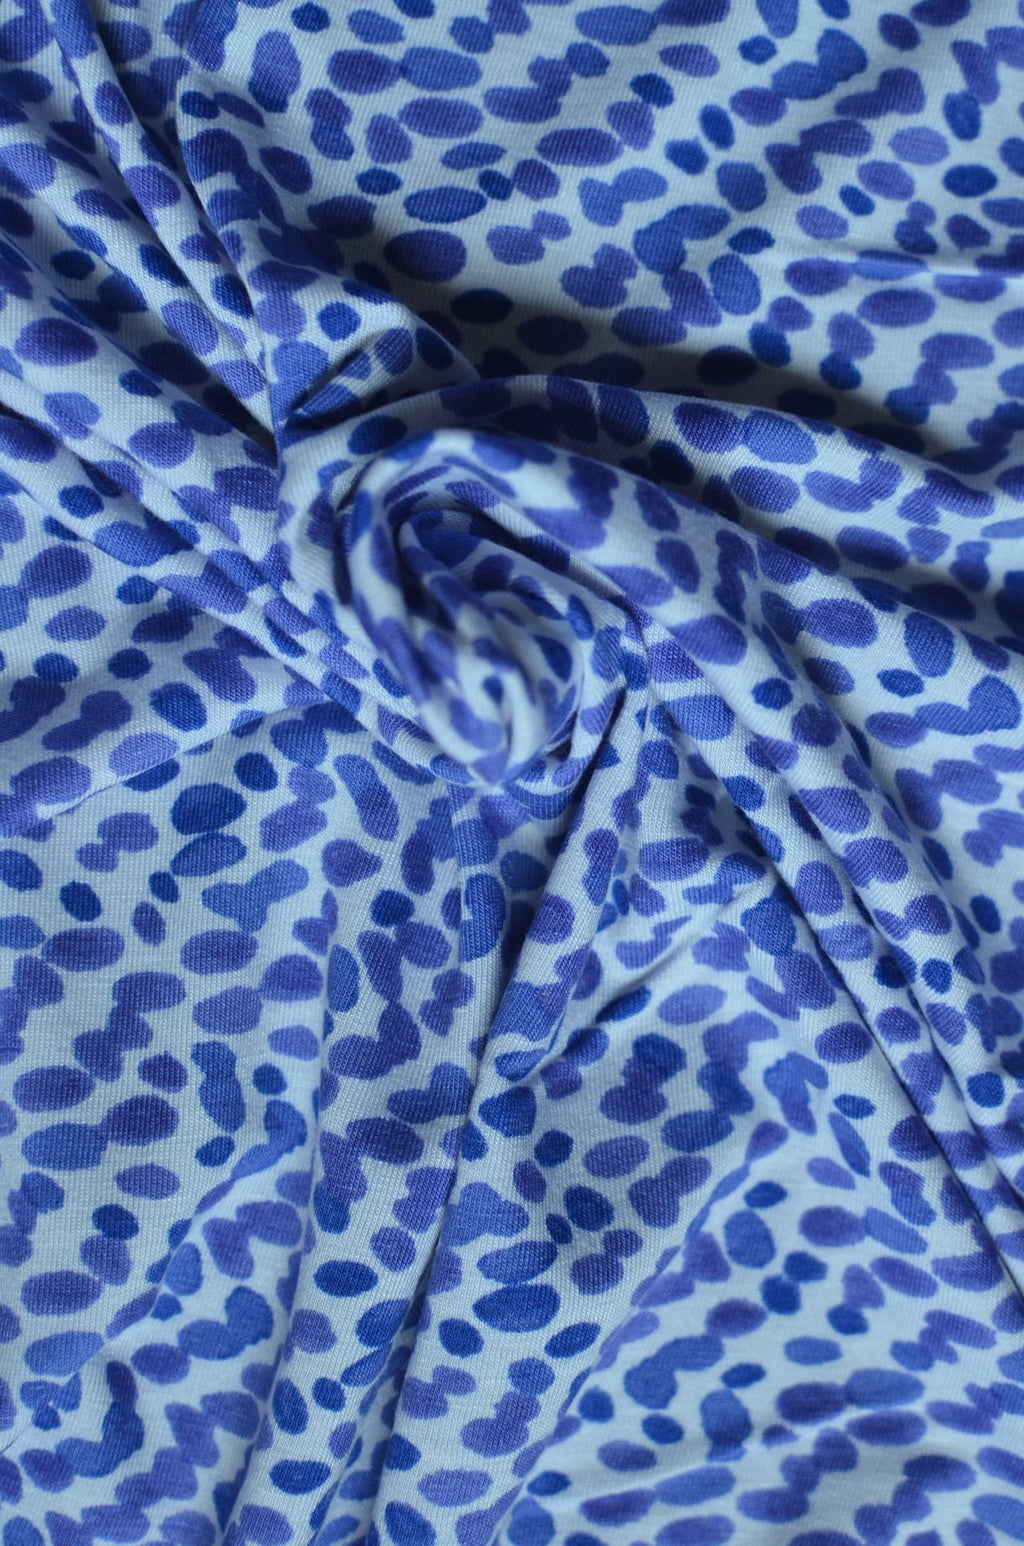 Remnant - Abstract Dots  – Rayon/Spandex Knit – .78 yard